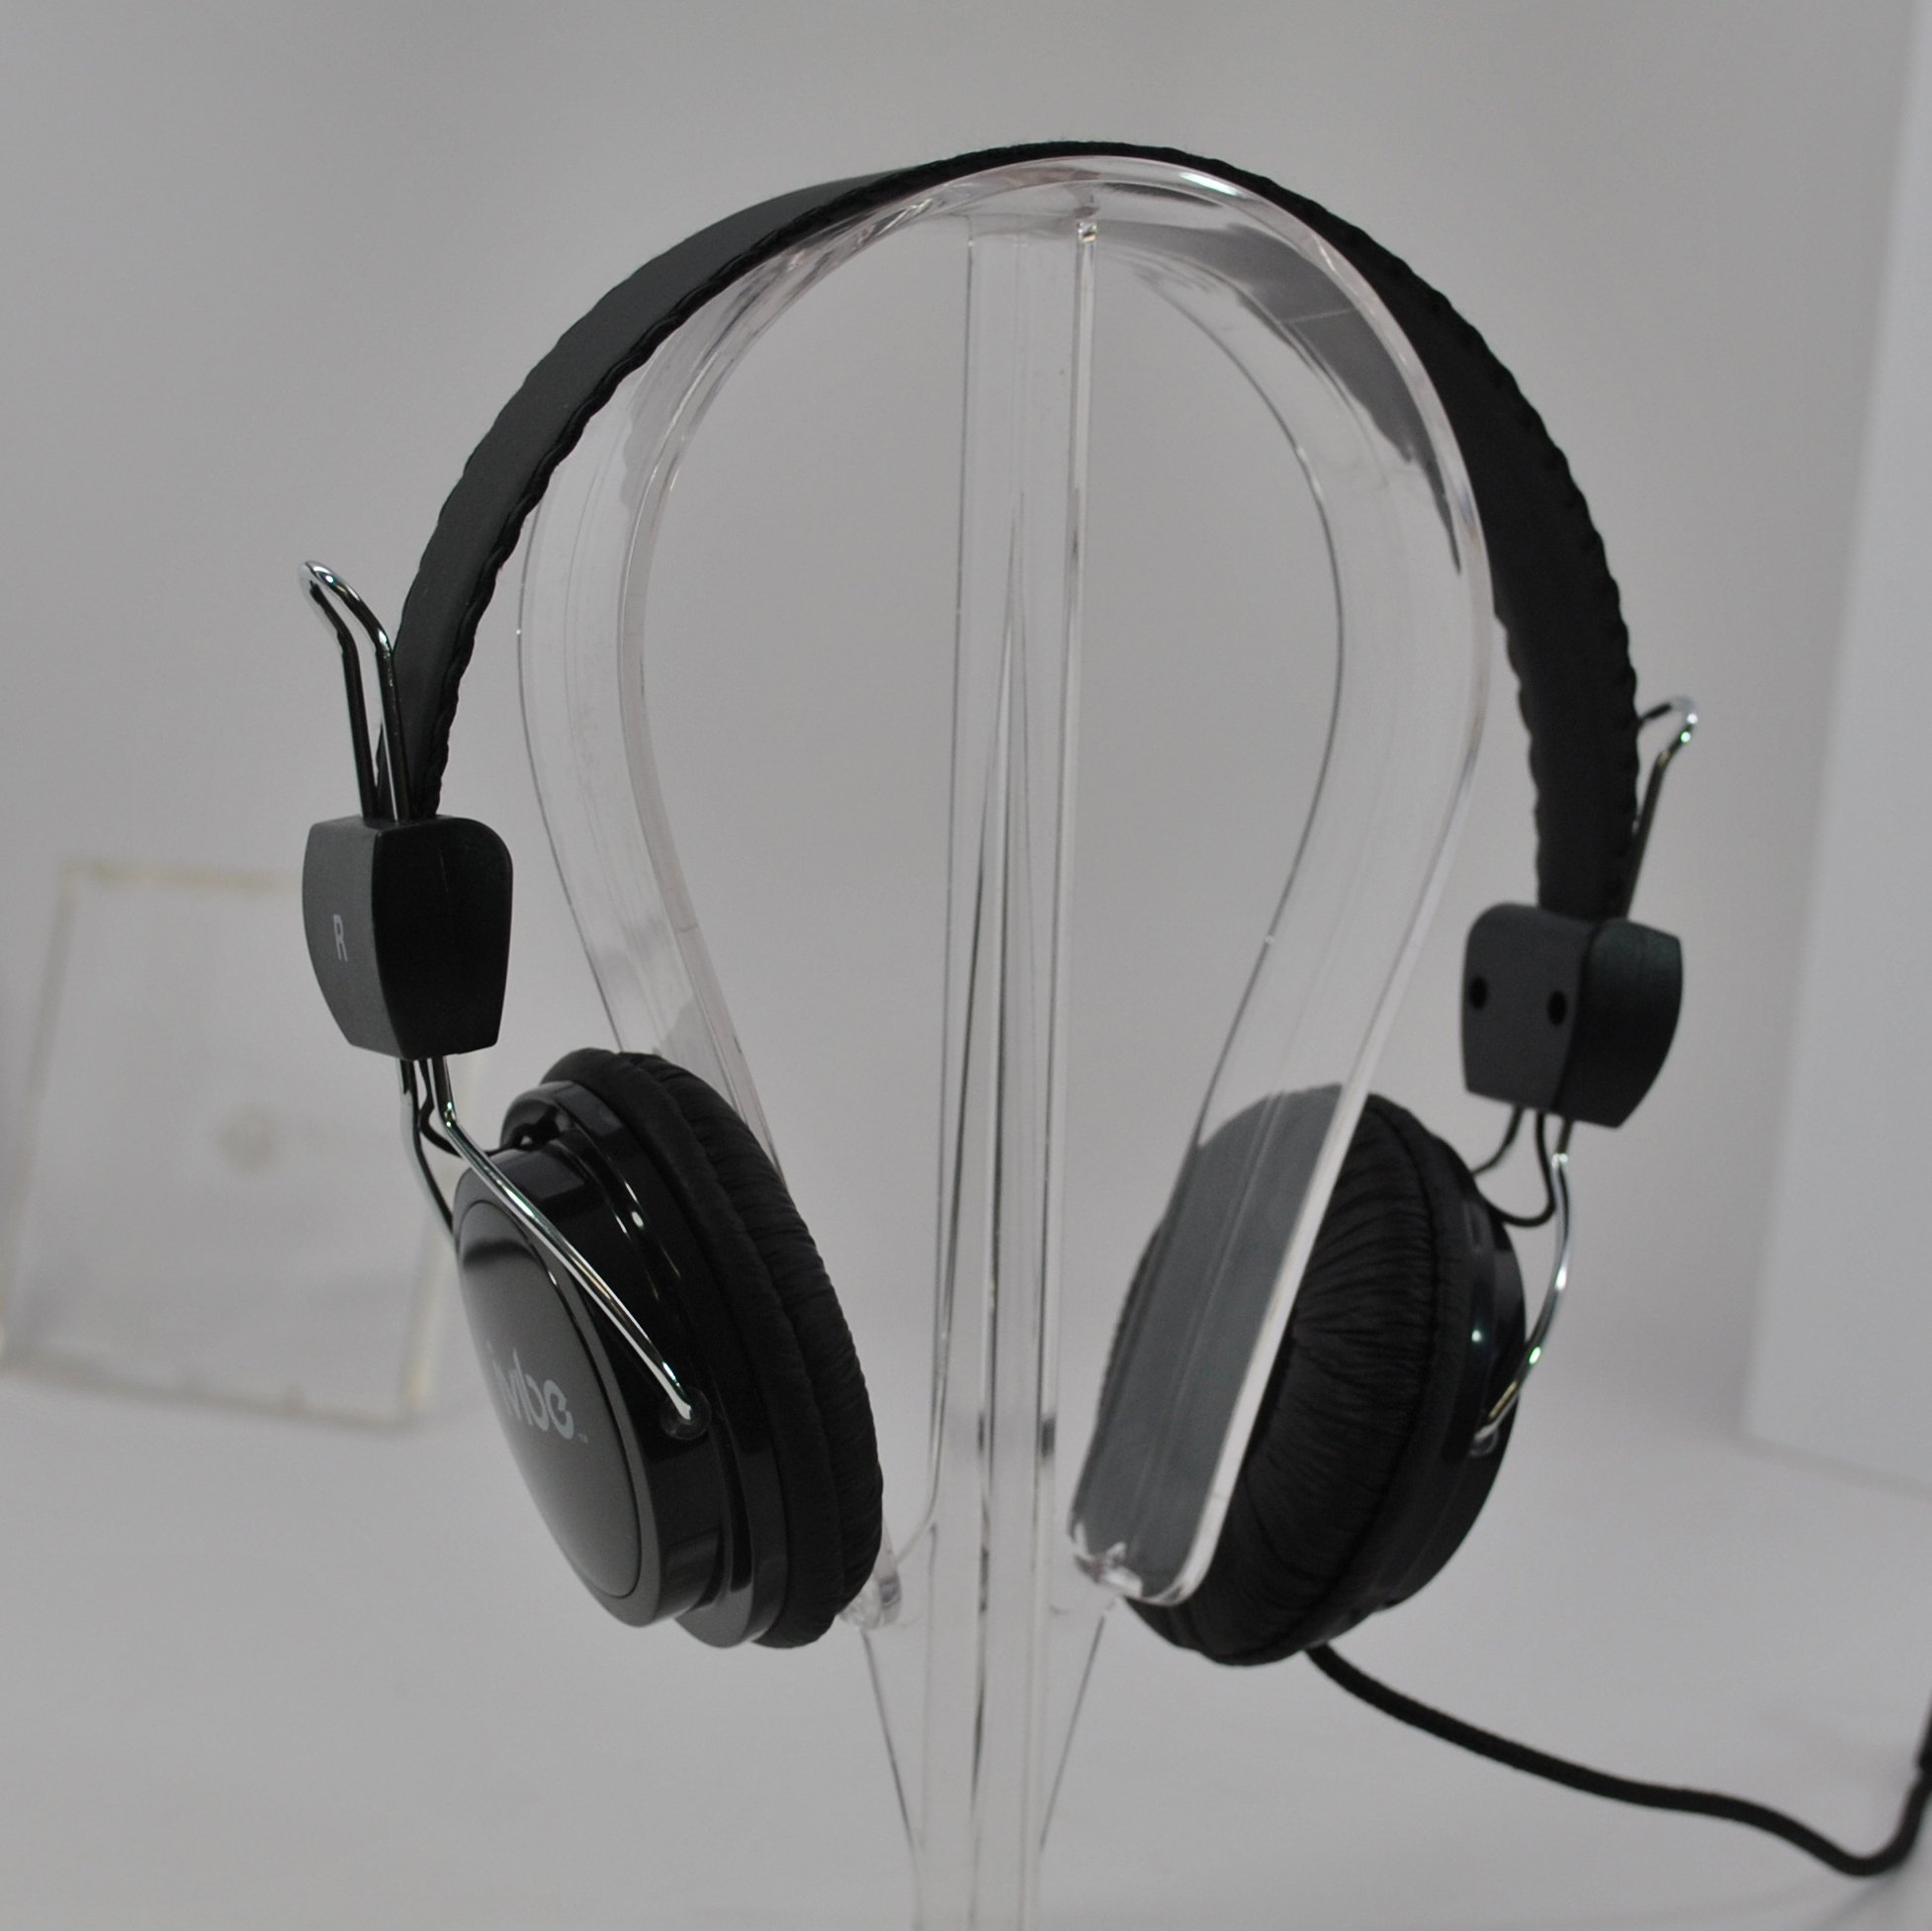 IV-200-BLK On-Ear Stereo Headphones with Built-In Microphone for MP3 Players, iPods and iPhones, Black